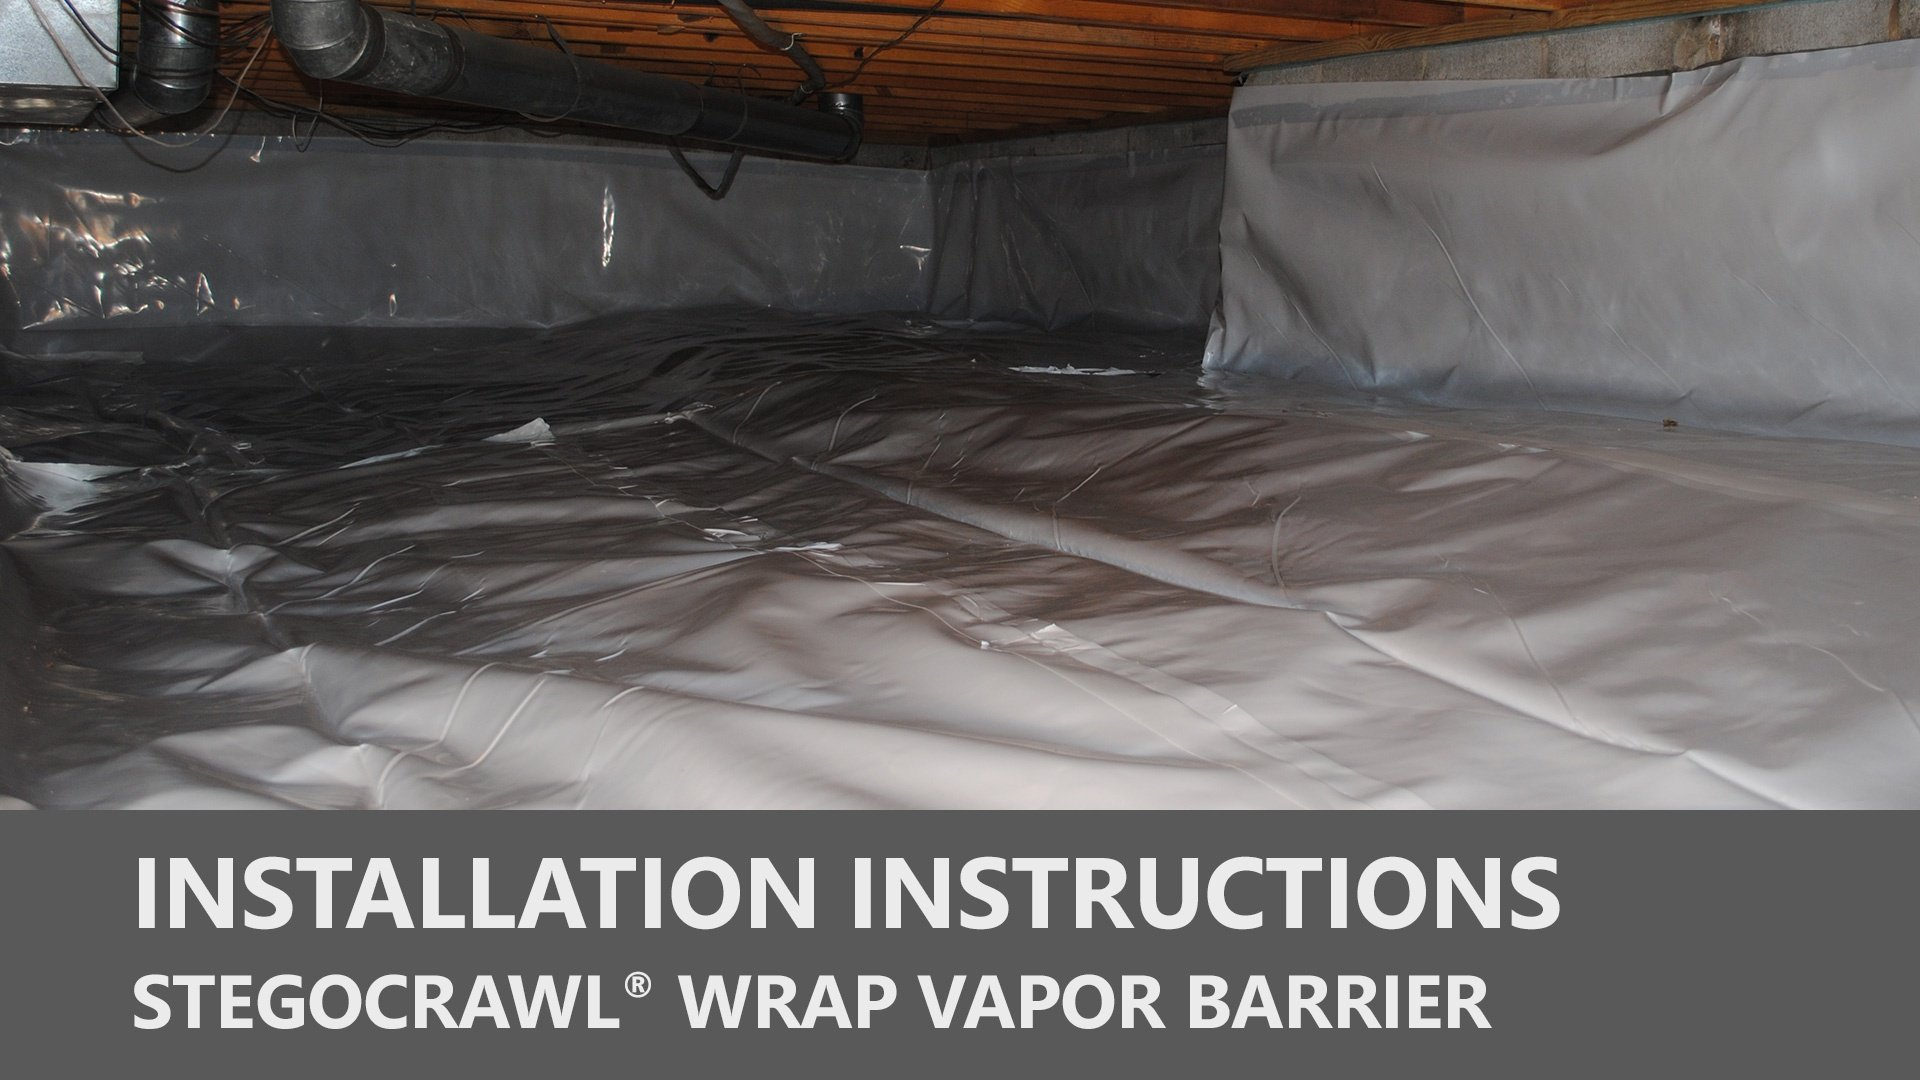 StegoCrawl Wrap Vapor Barrier Installation Instructions Video